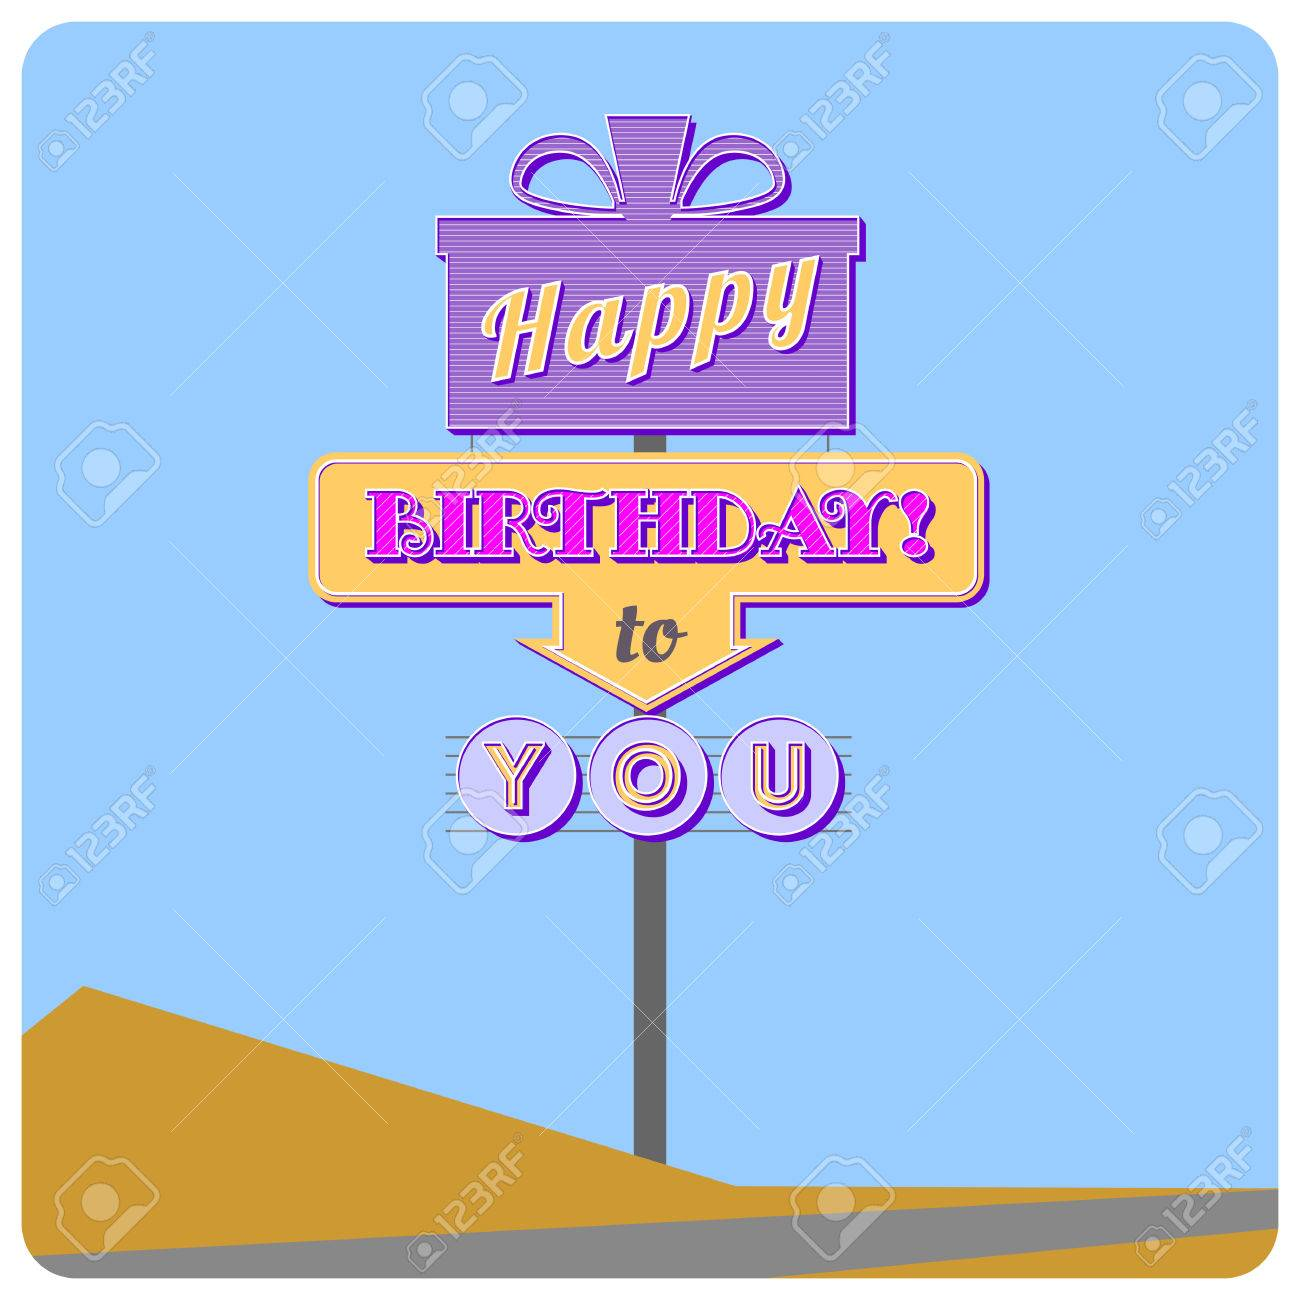 Happy Birthday Road Sign Greeting Card In The Style Of The – How to Sign a Birthday Card